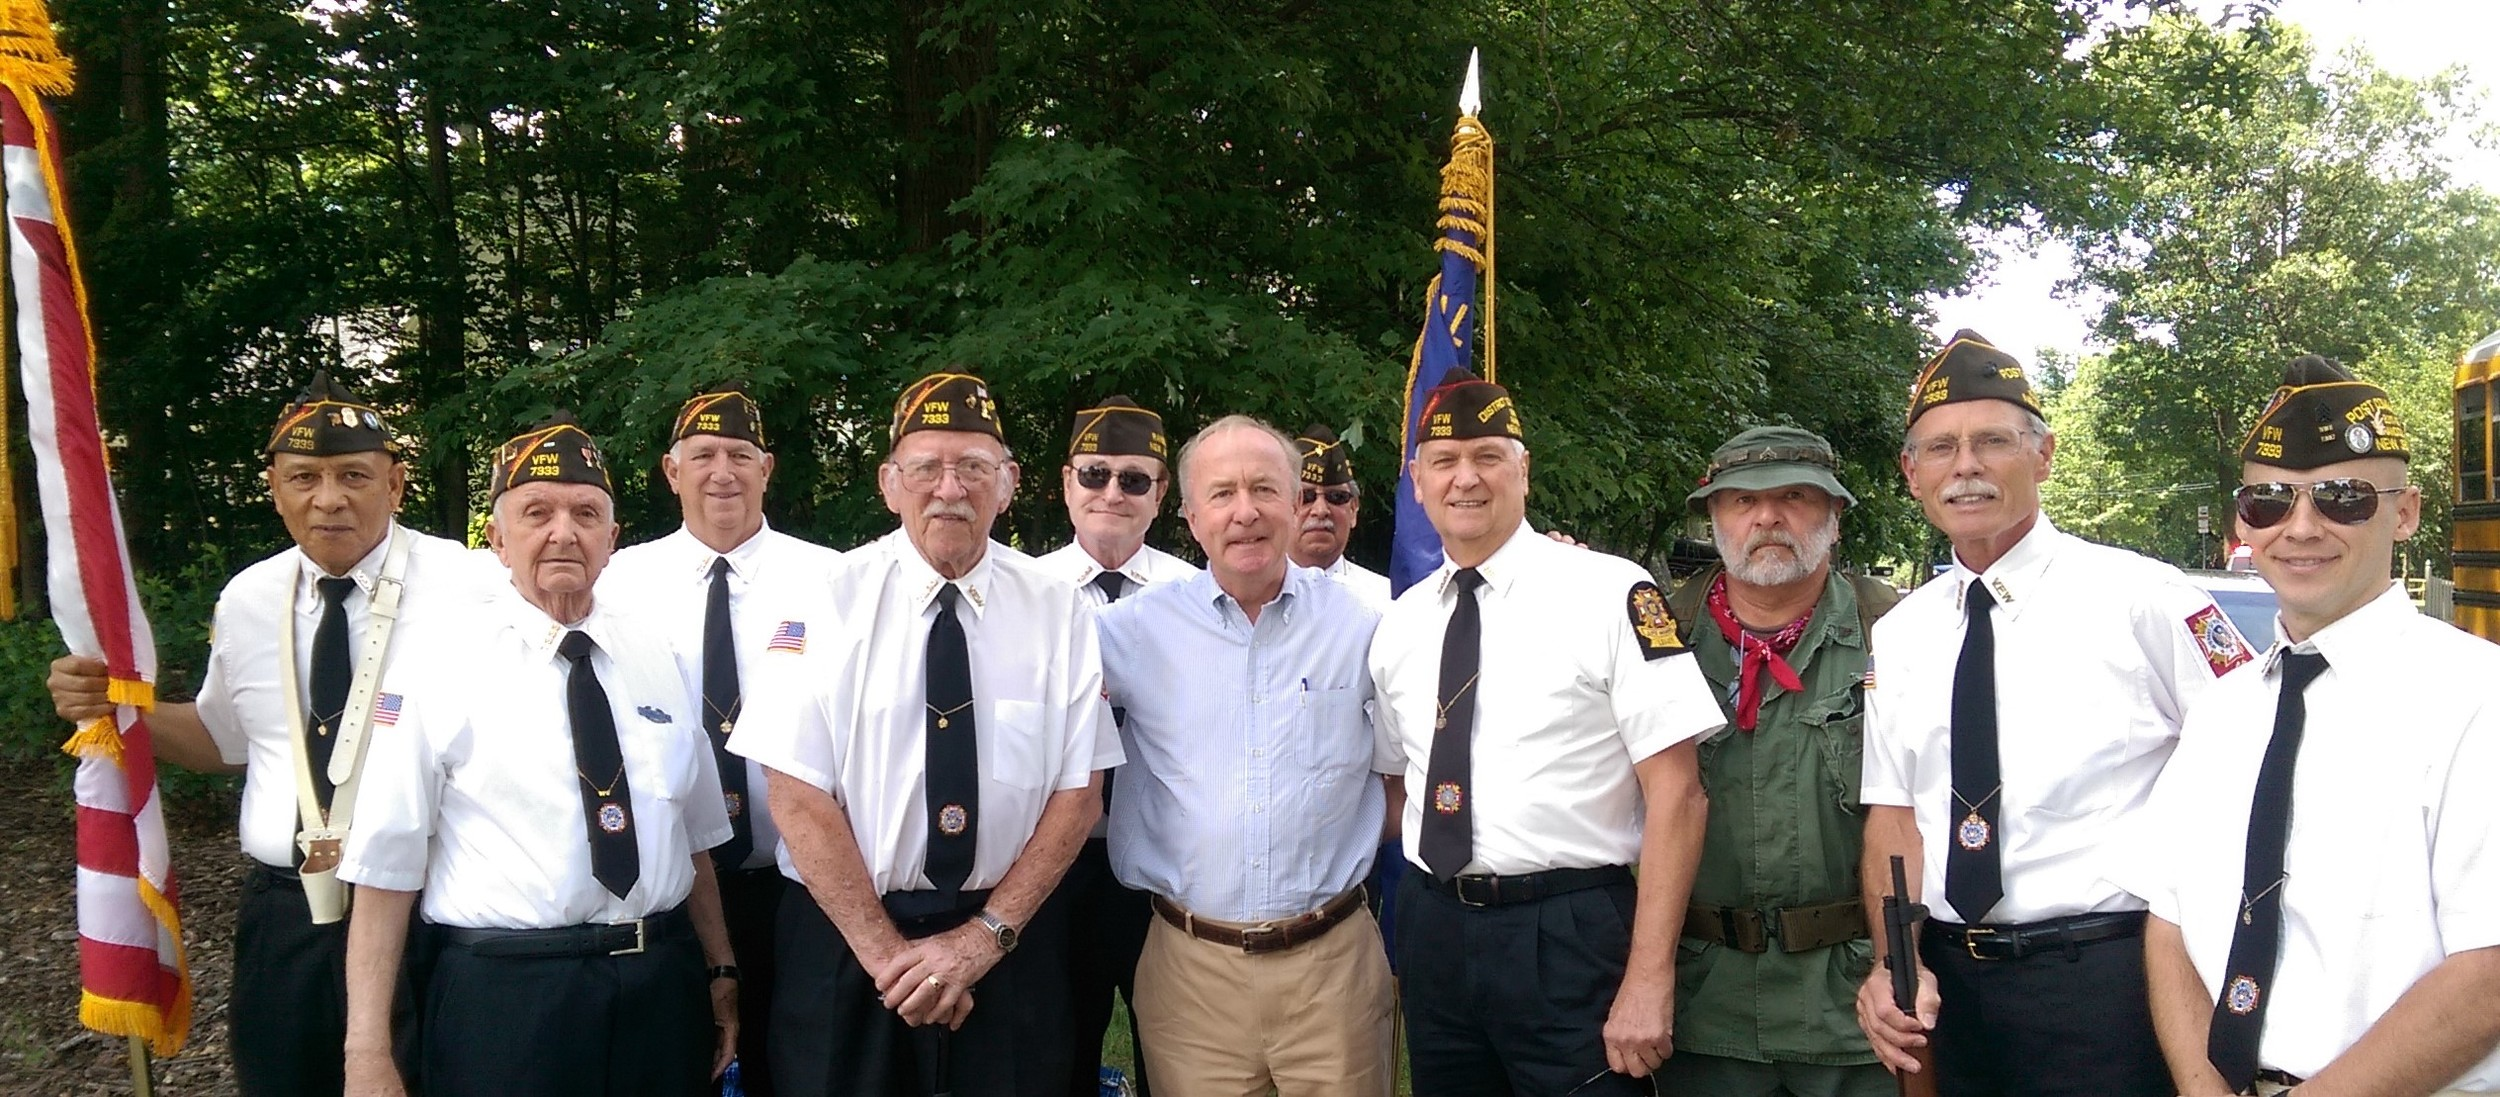 Congressman Rodney Freylinghuysen greets the VFW color guard at the 2016 Randolph Freedom Festival Parade.